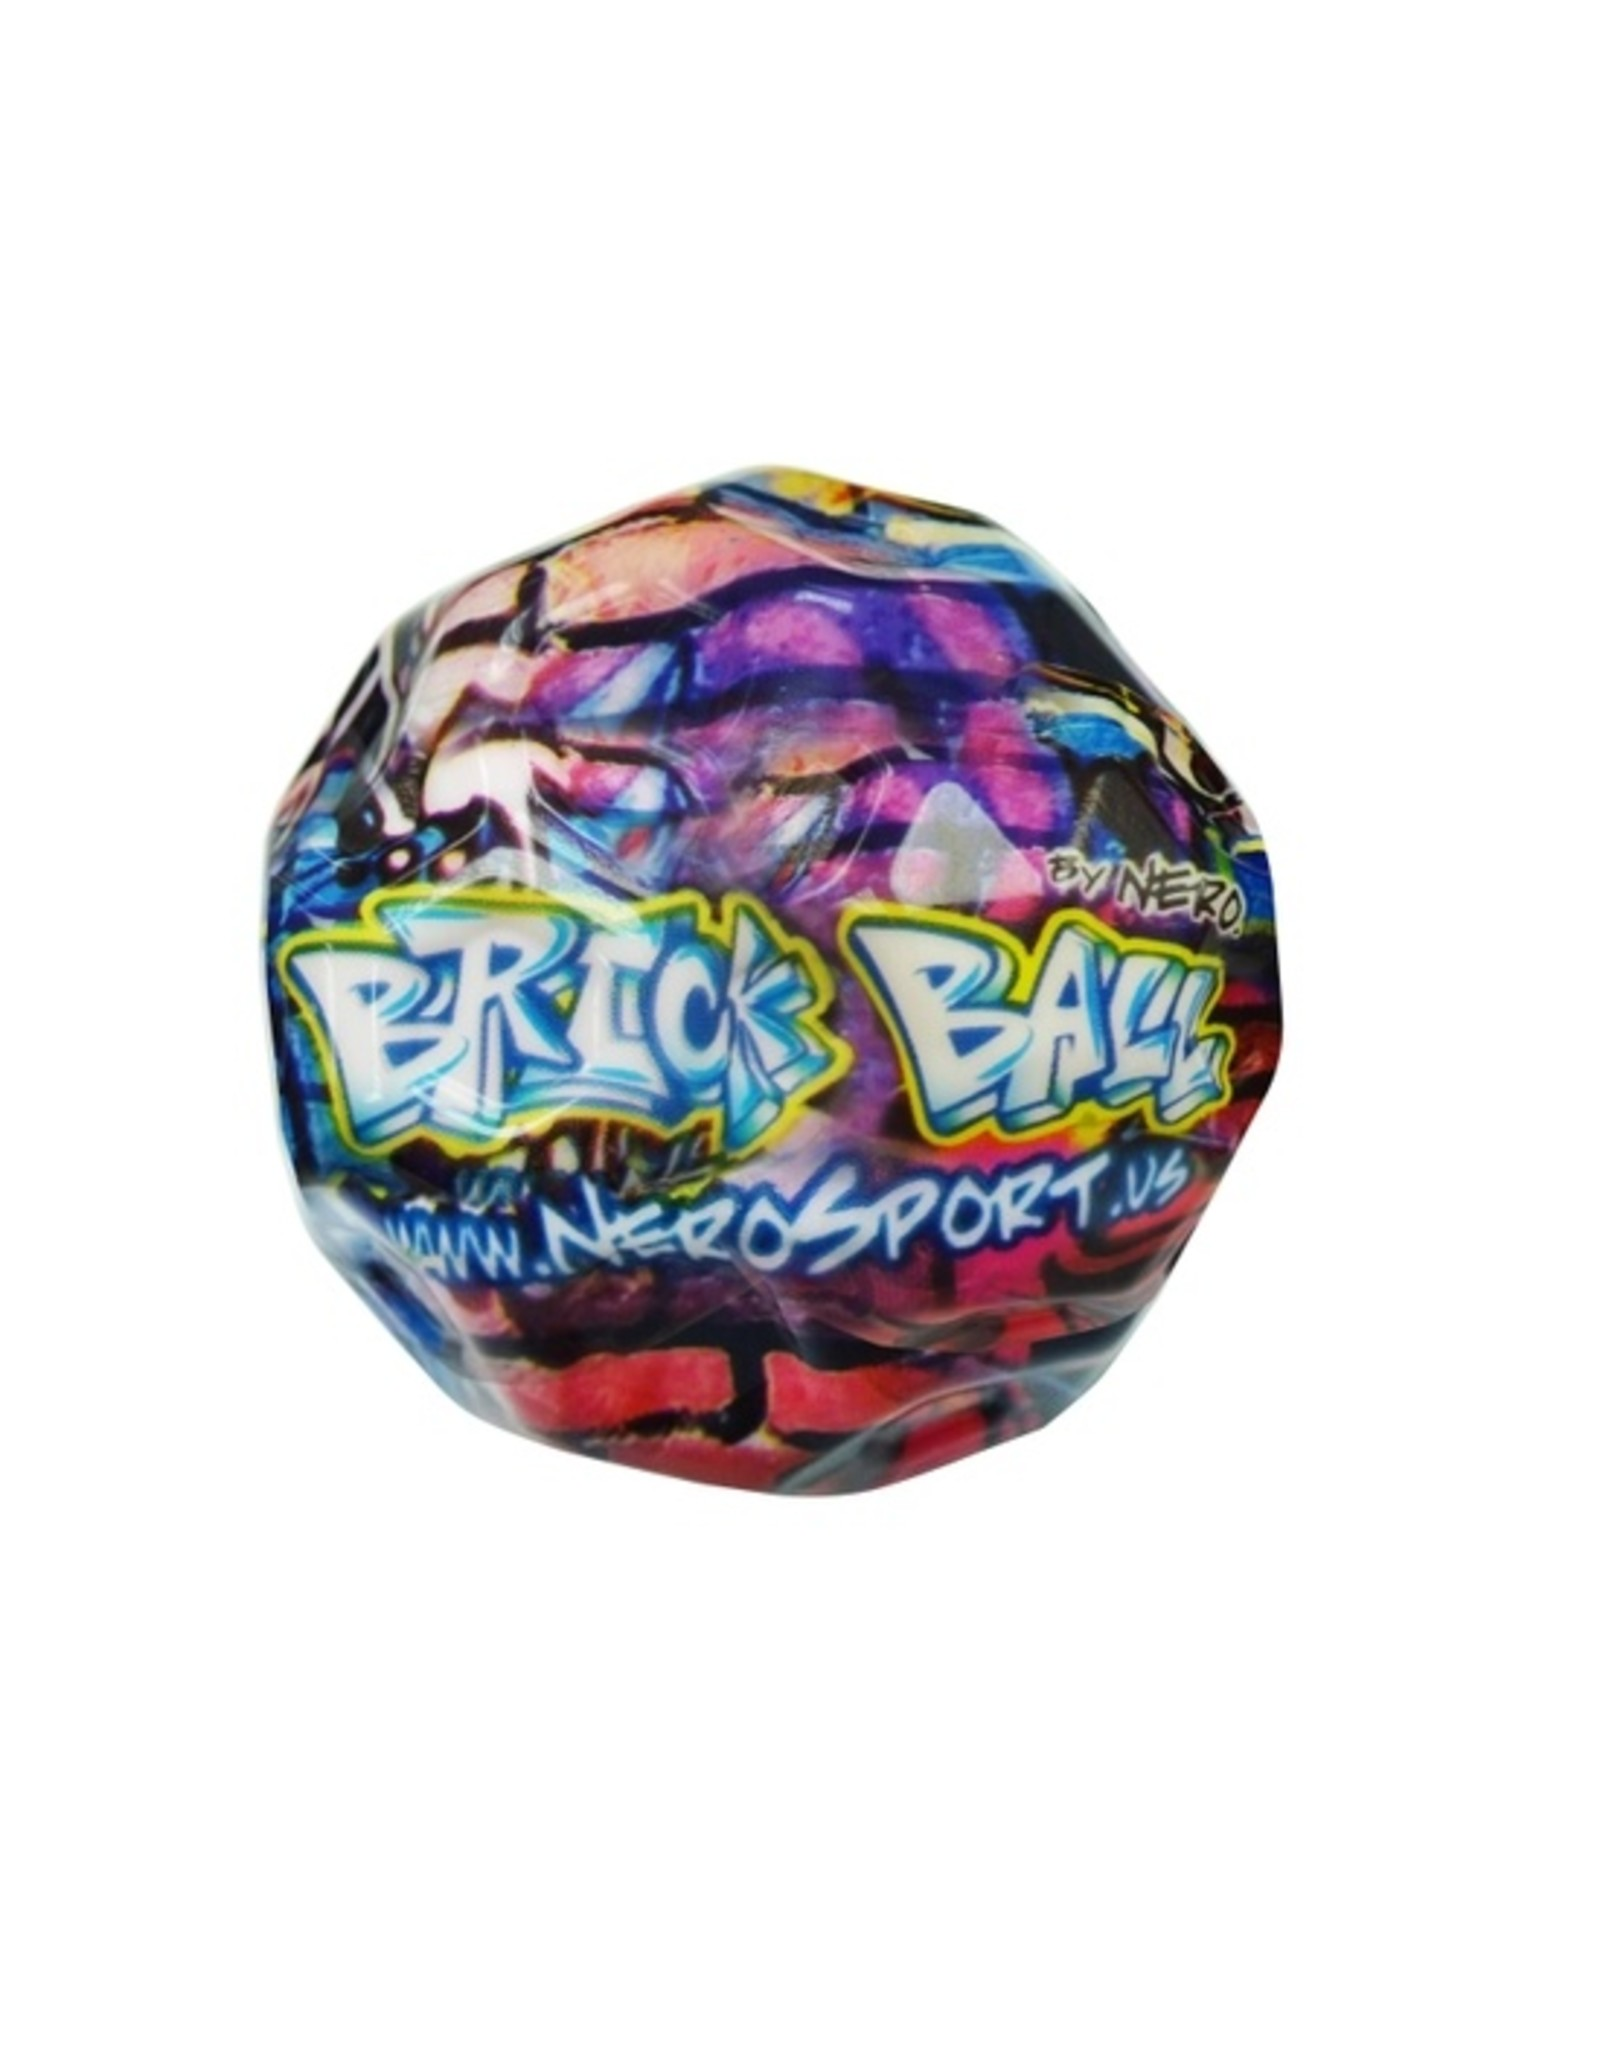 Brick High Bouncing Ball